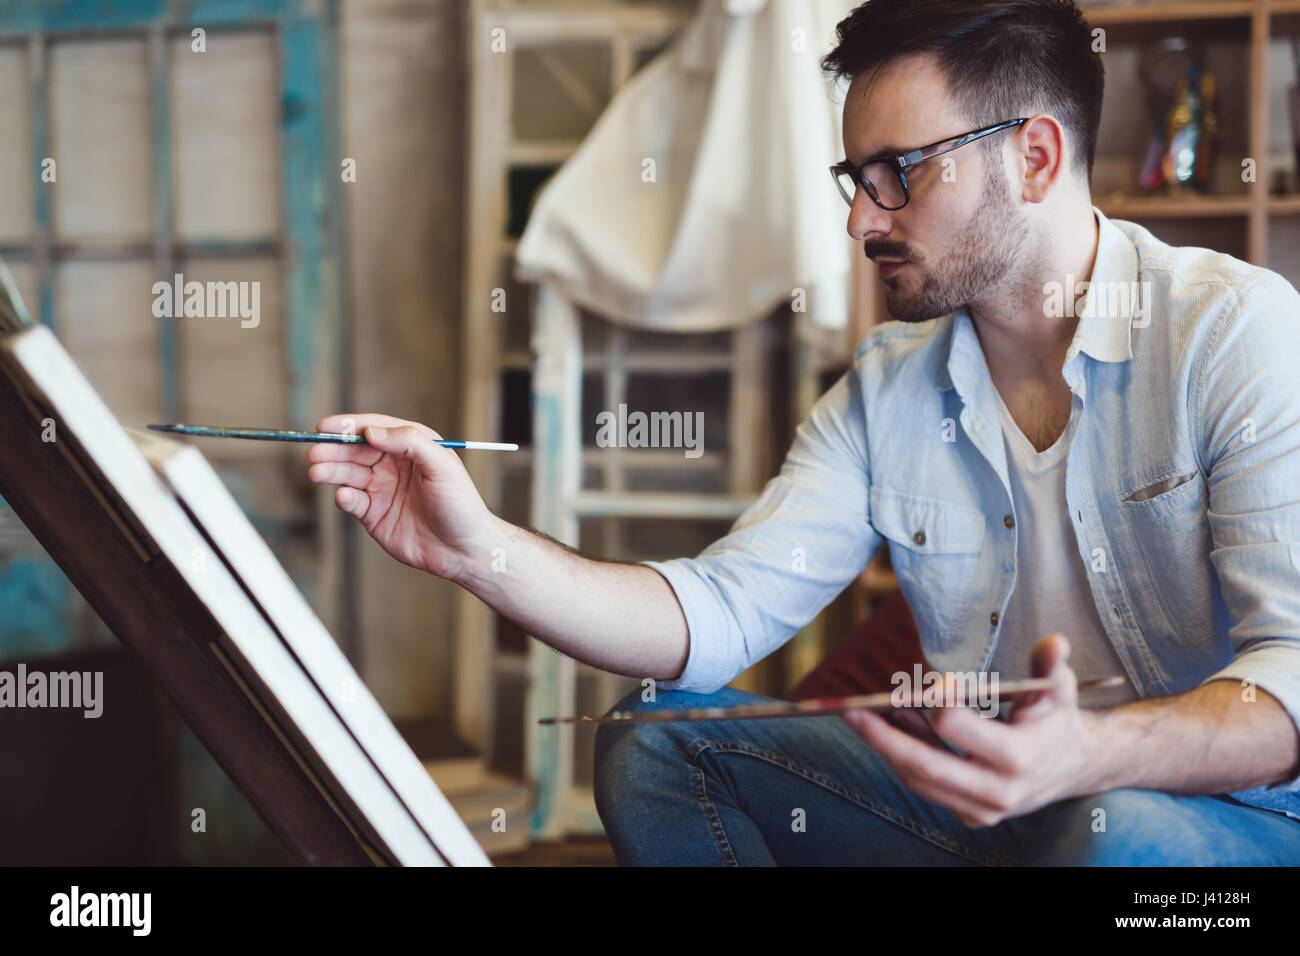 Male art school artist painting with oil on canvas in studio - Stock Image